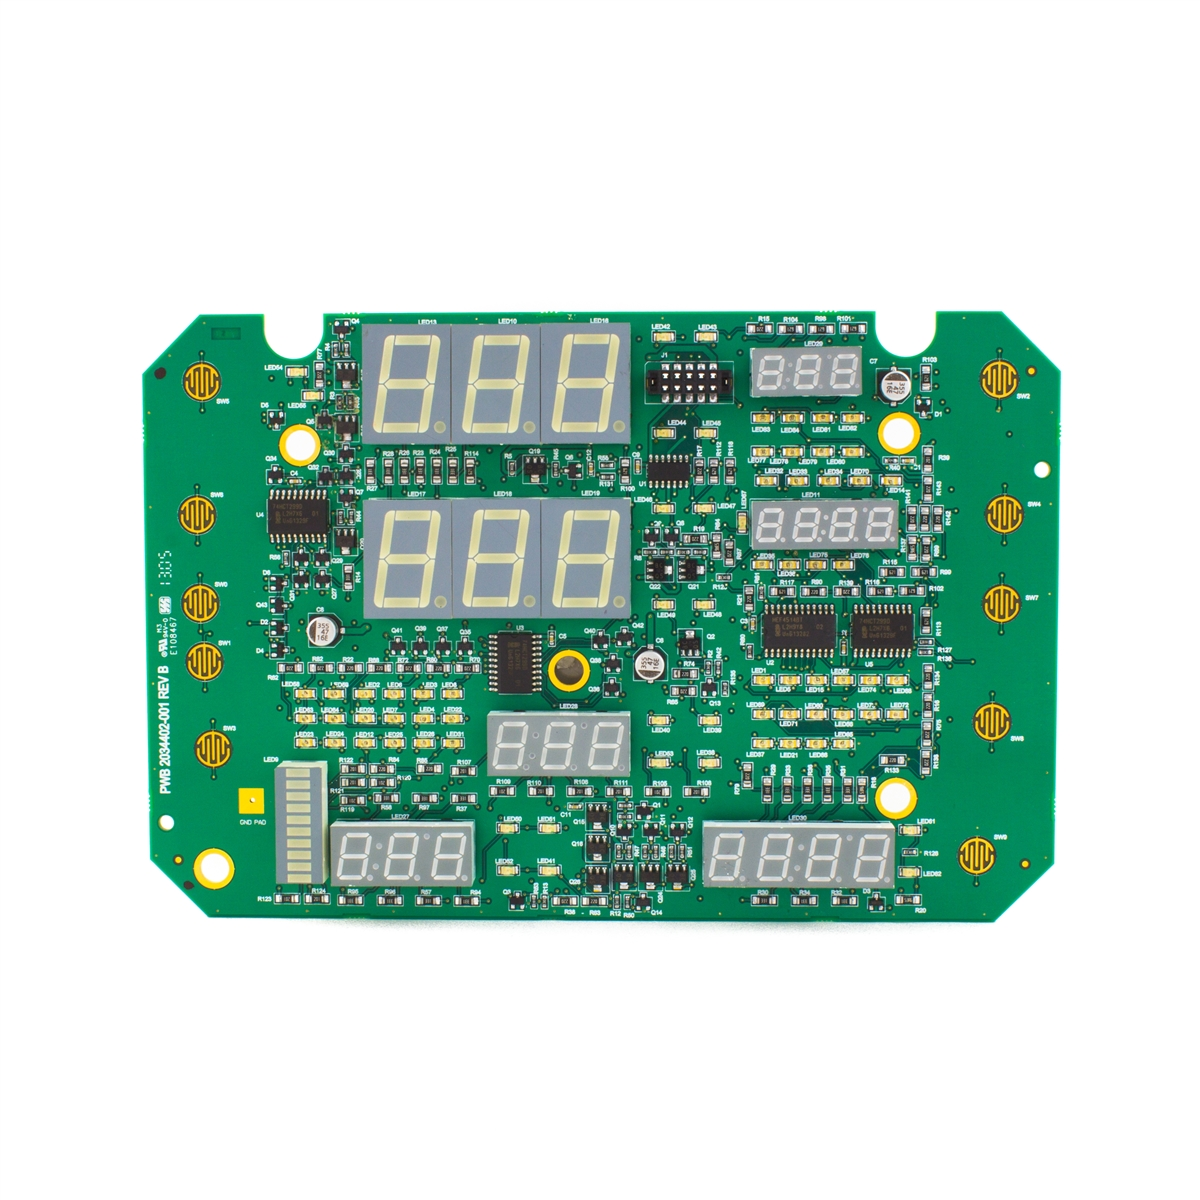 GE Carescape V100 Vital Signs Monitor User Interface Display Circuit Board